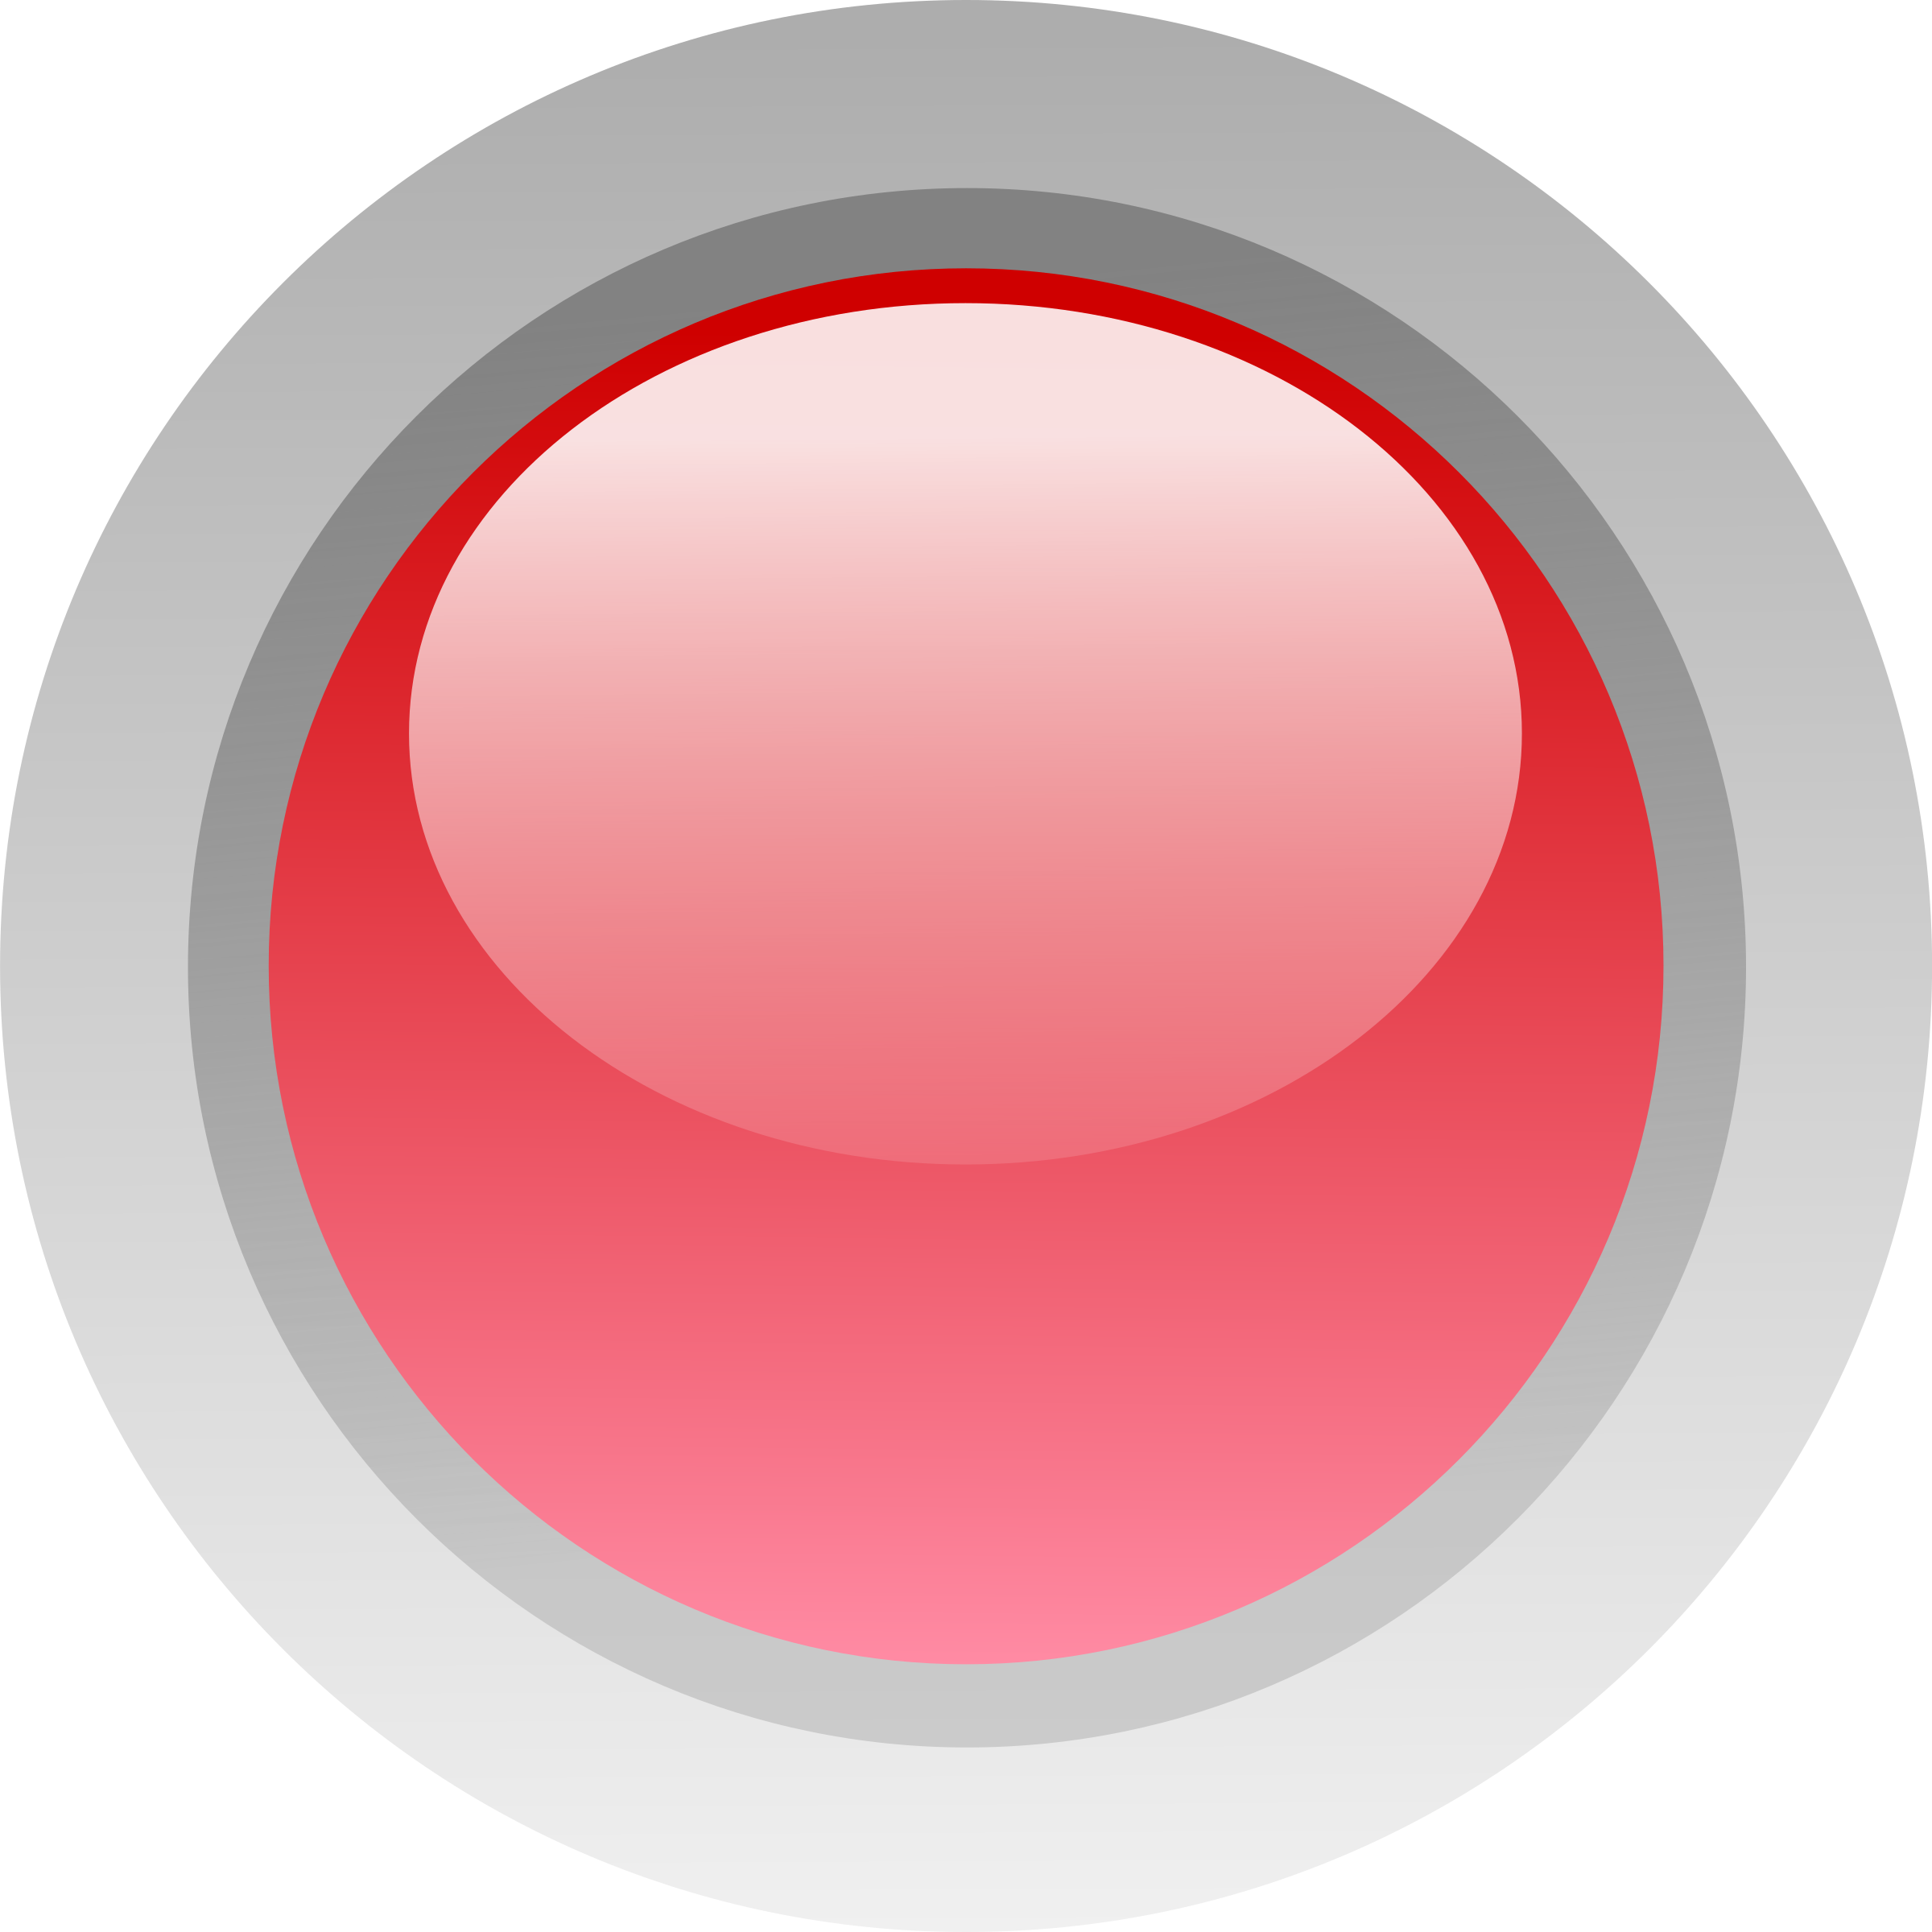 Circle clipart red. Led big image png